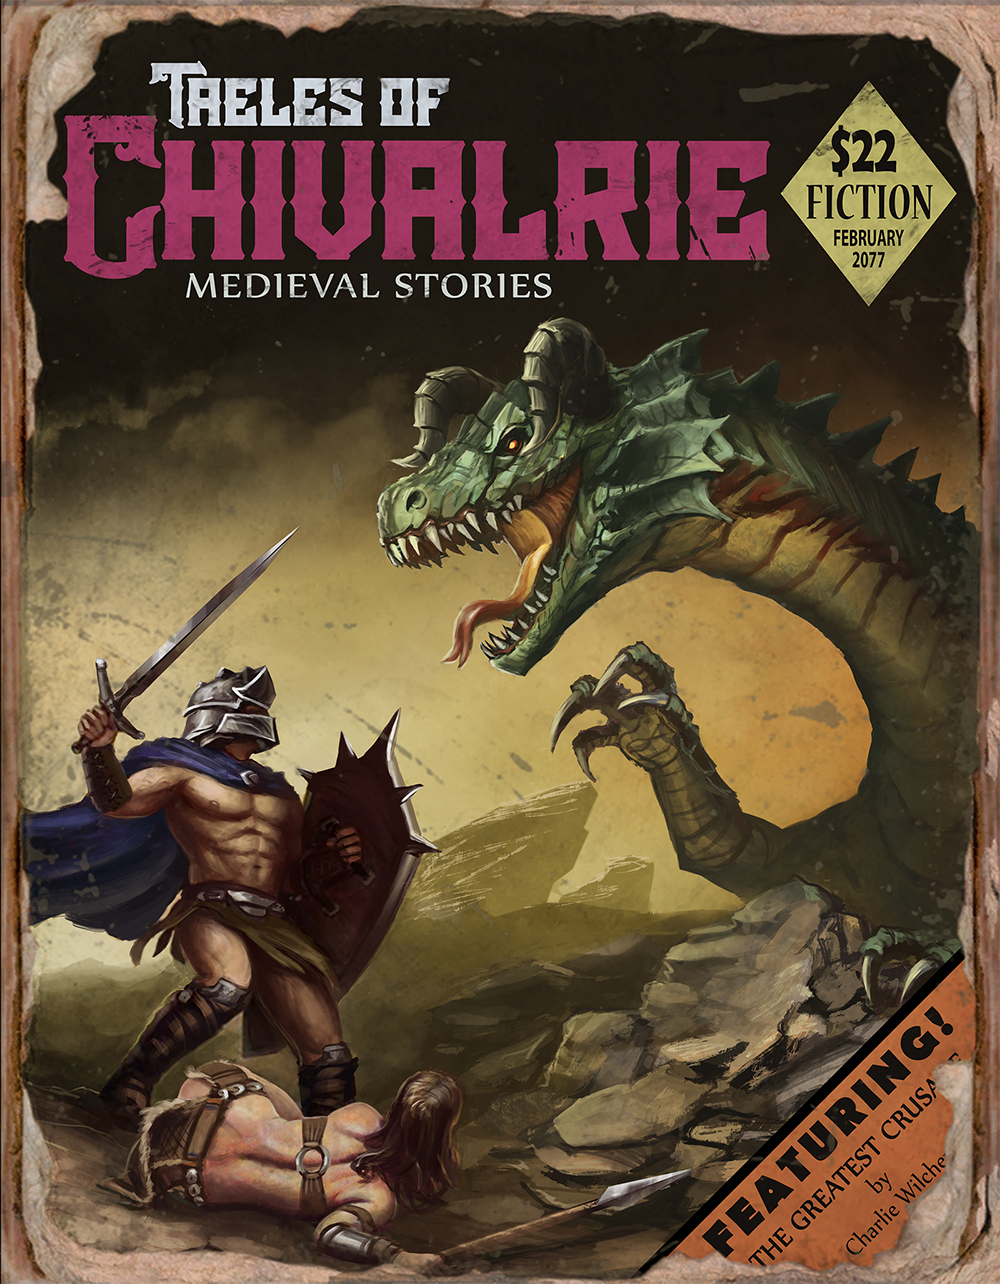 Taeles of Chivalrie